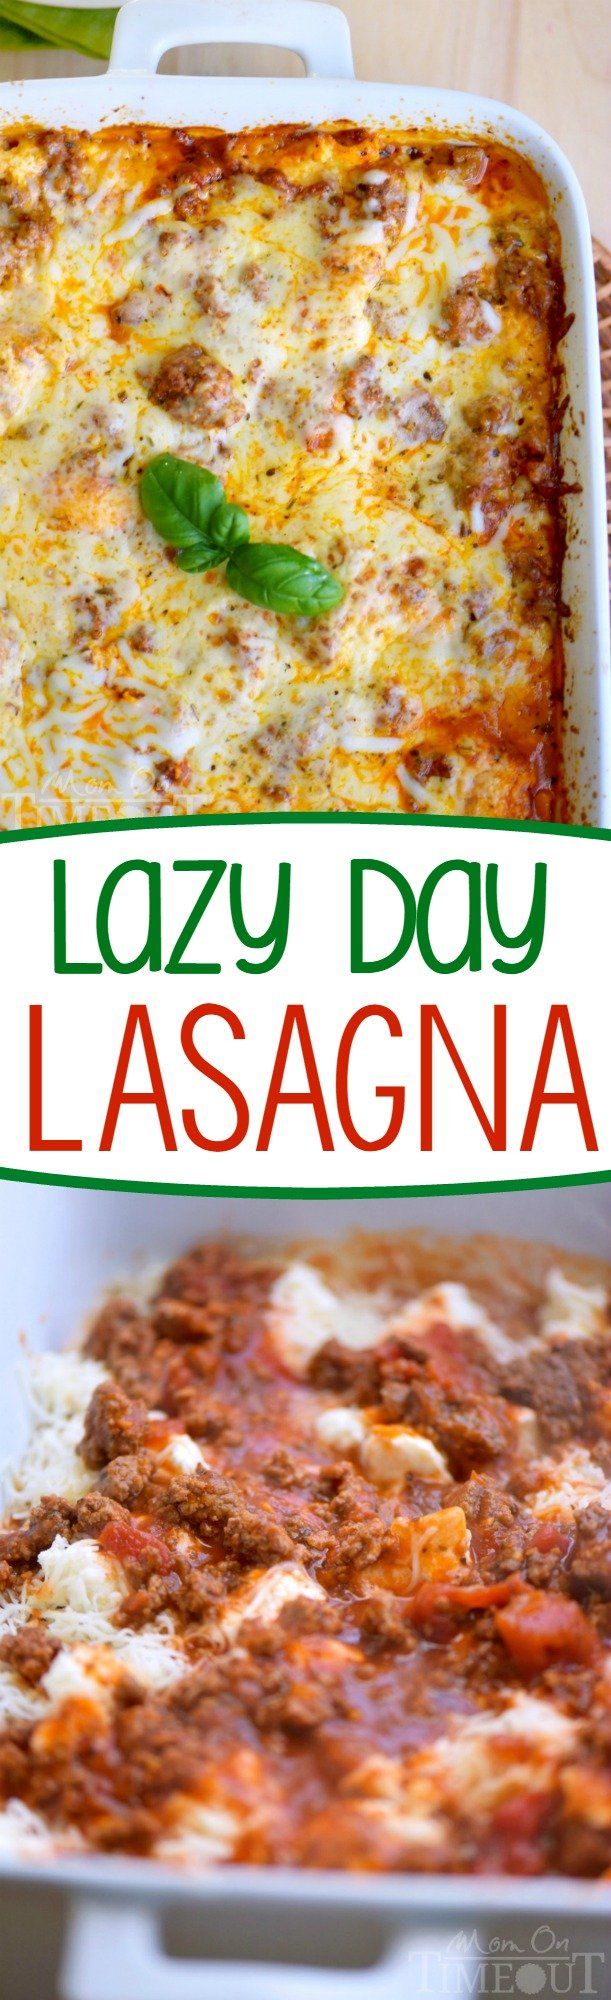 lazy-day-lasagna-recipe-collage